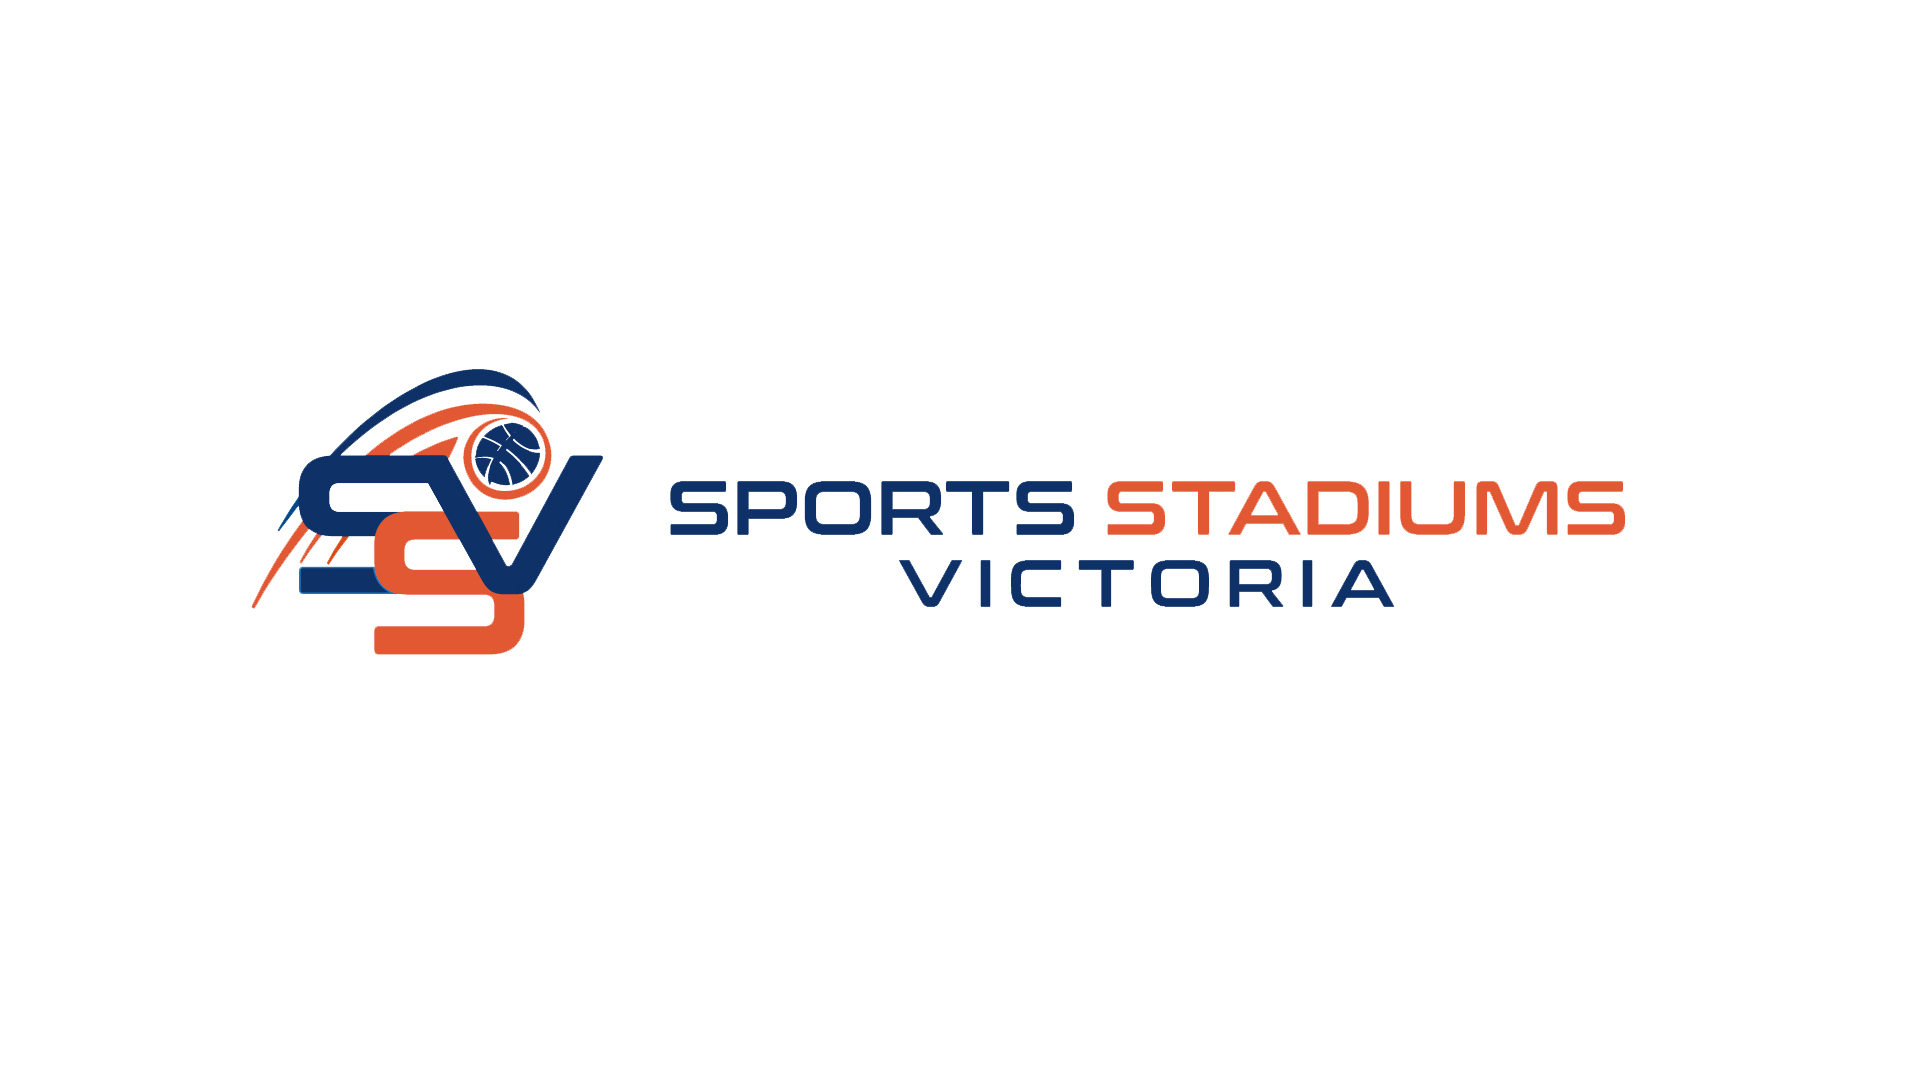 Home - image new_logo_slide on https://www.sportsstadiumsvictoria.com.au